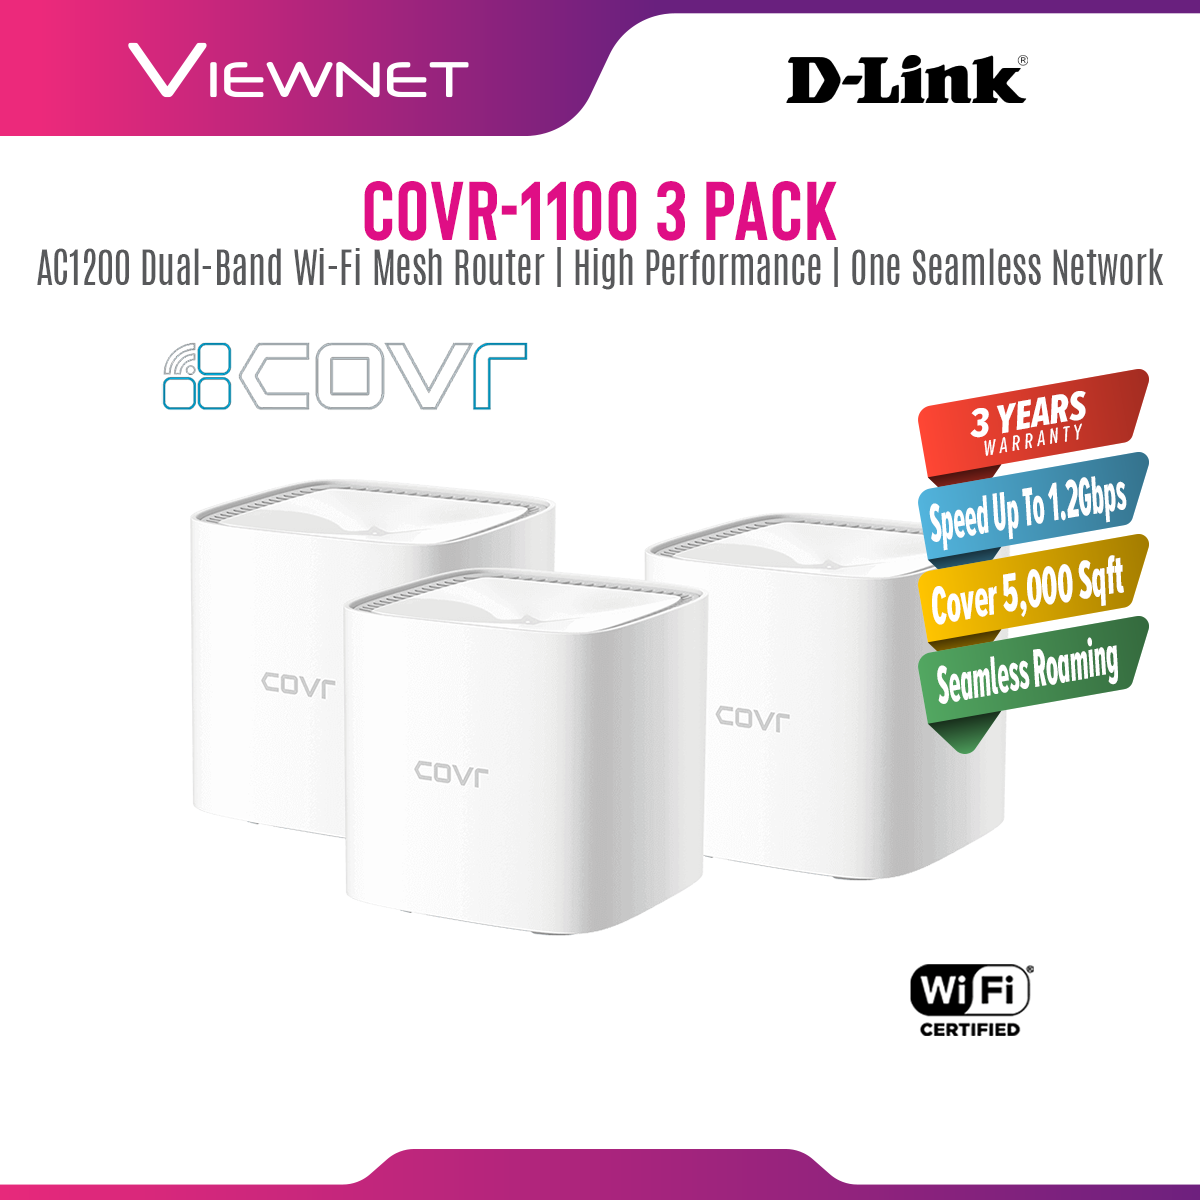 D-Link COVR-C1100 Mesh WiFi Network System Gigabit Dual Band Wave 2 Whole Home Wireless Wi-Fi Router COVR C1100 COVR-1100 3 PACK COVR 1100